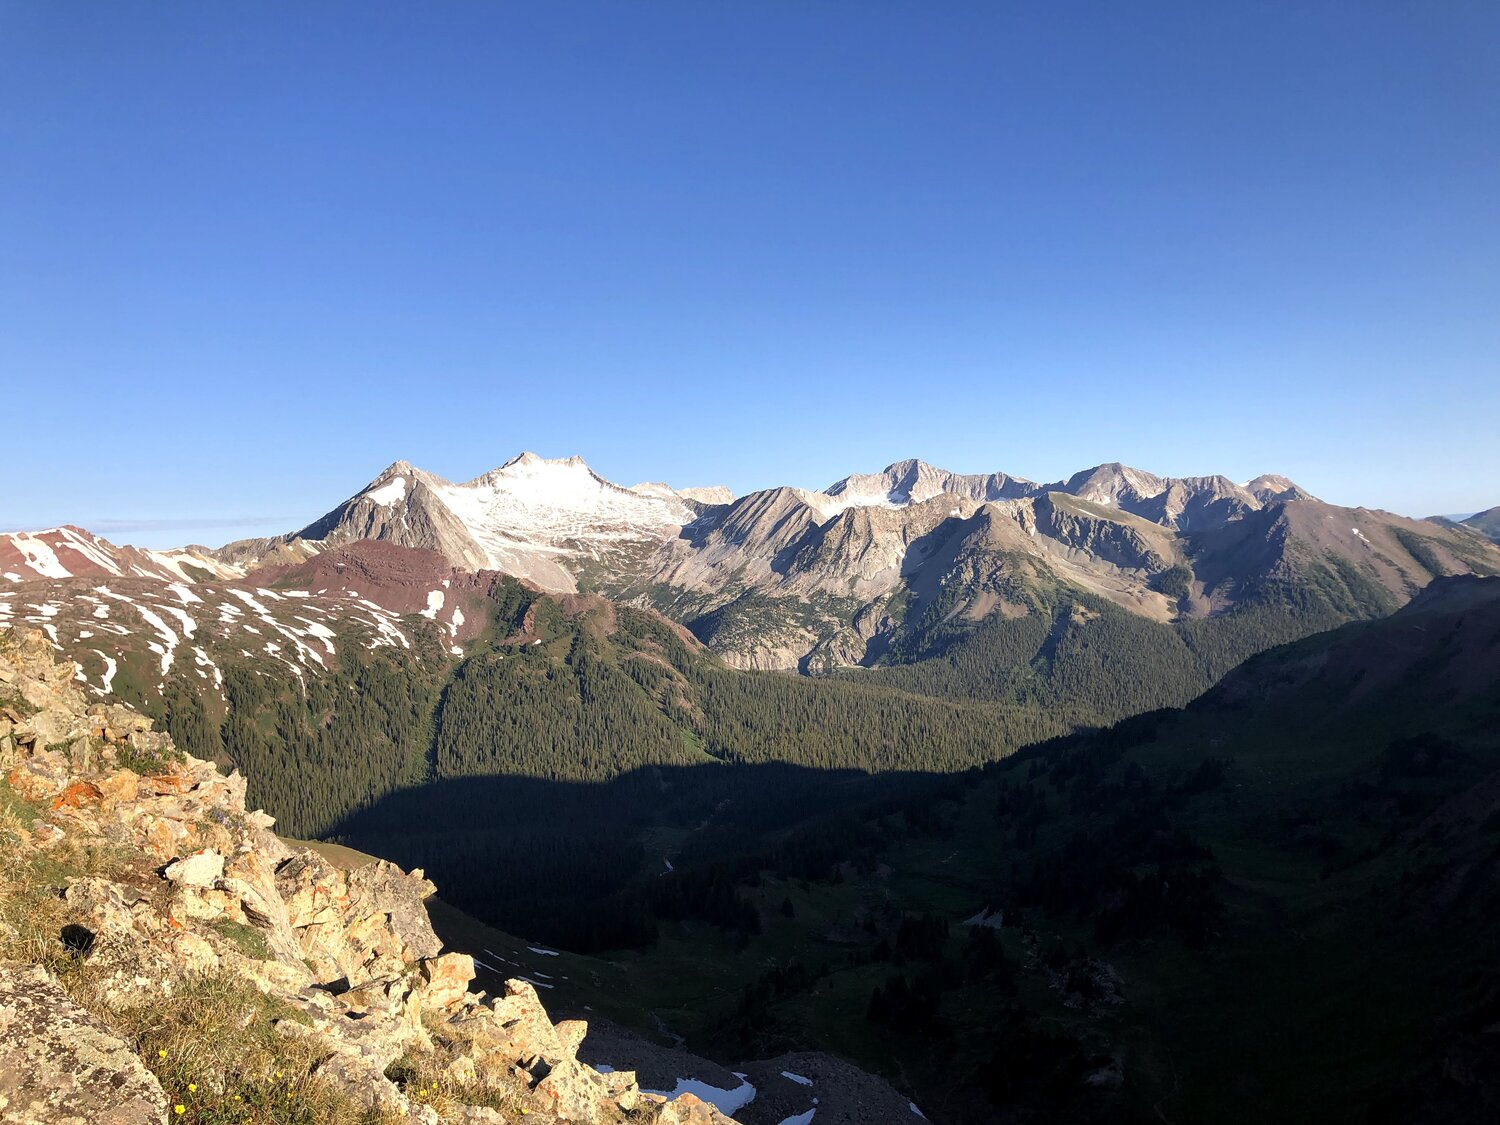 The view from Buckskin Pass, at 12,462 ft.